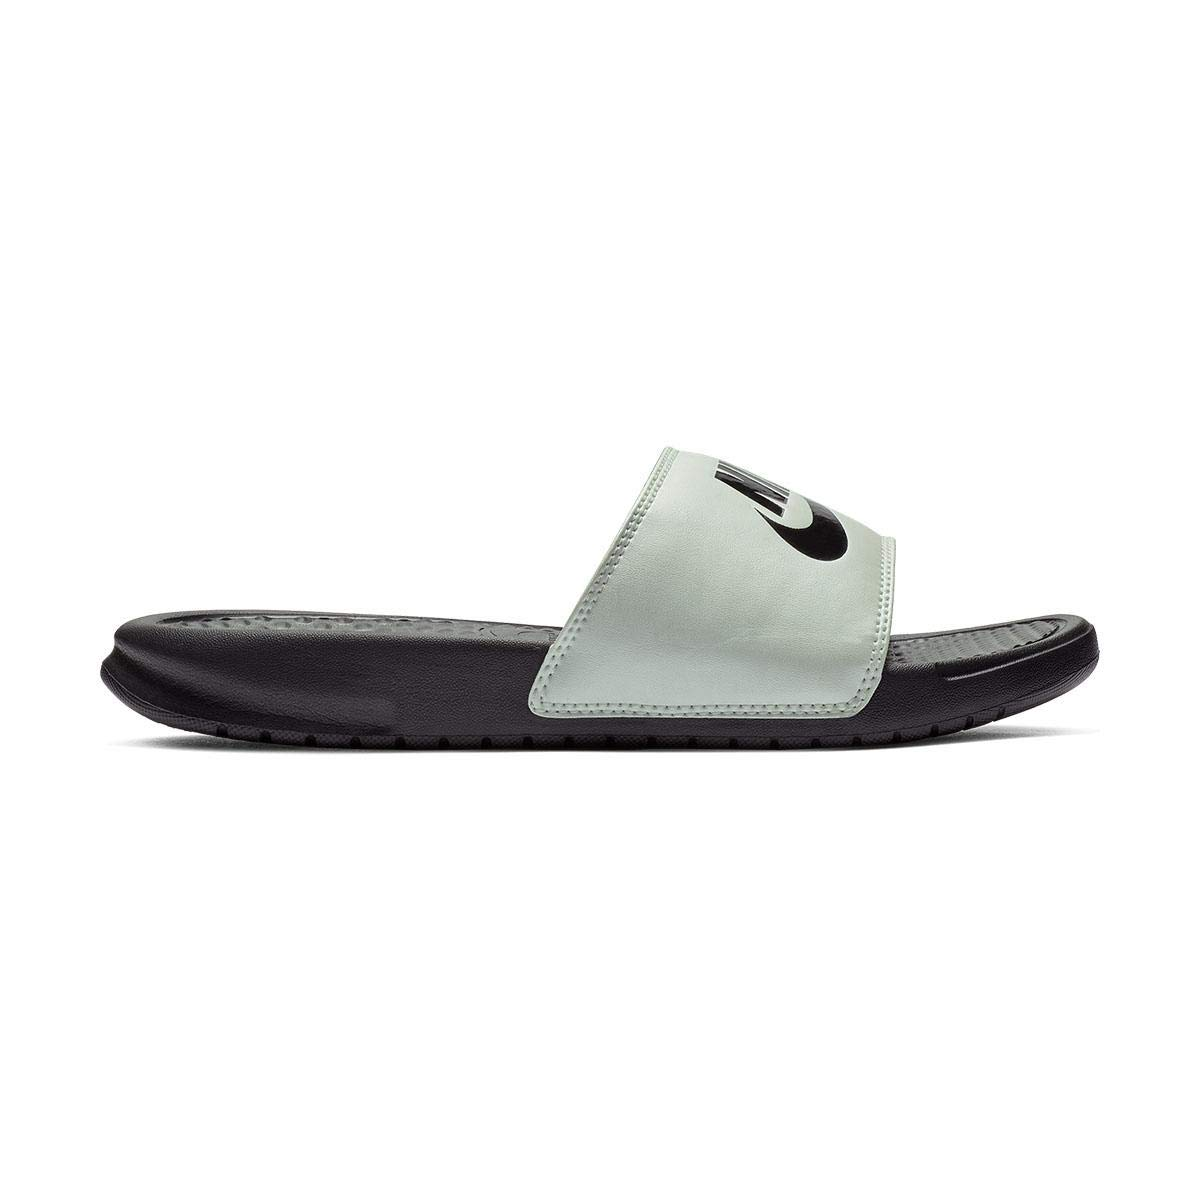 f4bfeb9eb Amazon.com  NIKE Women s Benassi Just Do It Synthetic Sandal  Shoes